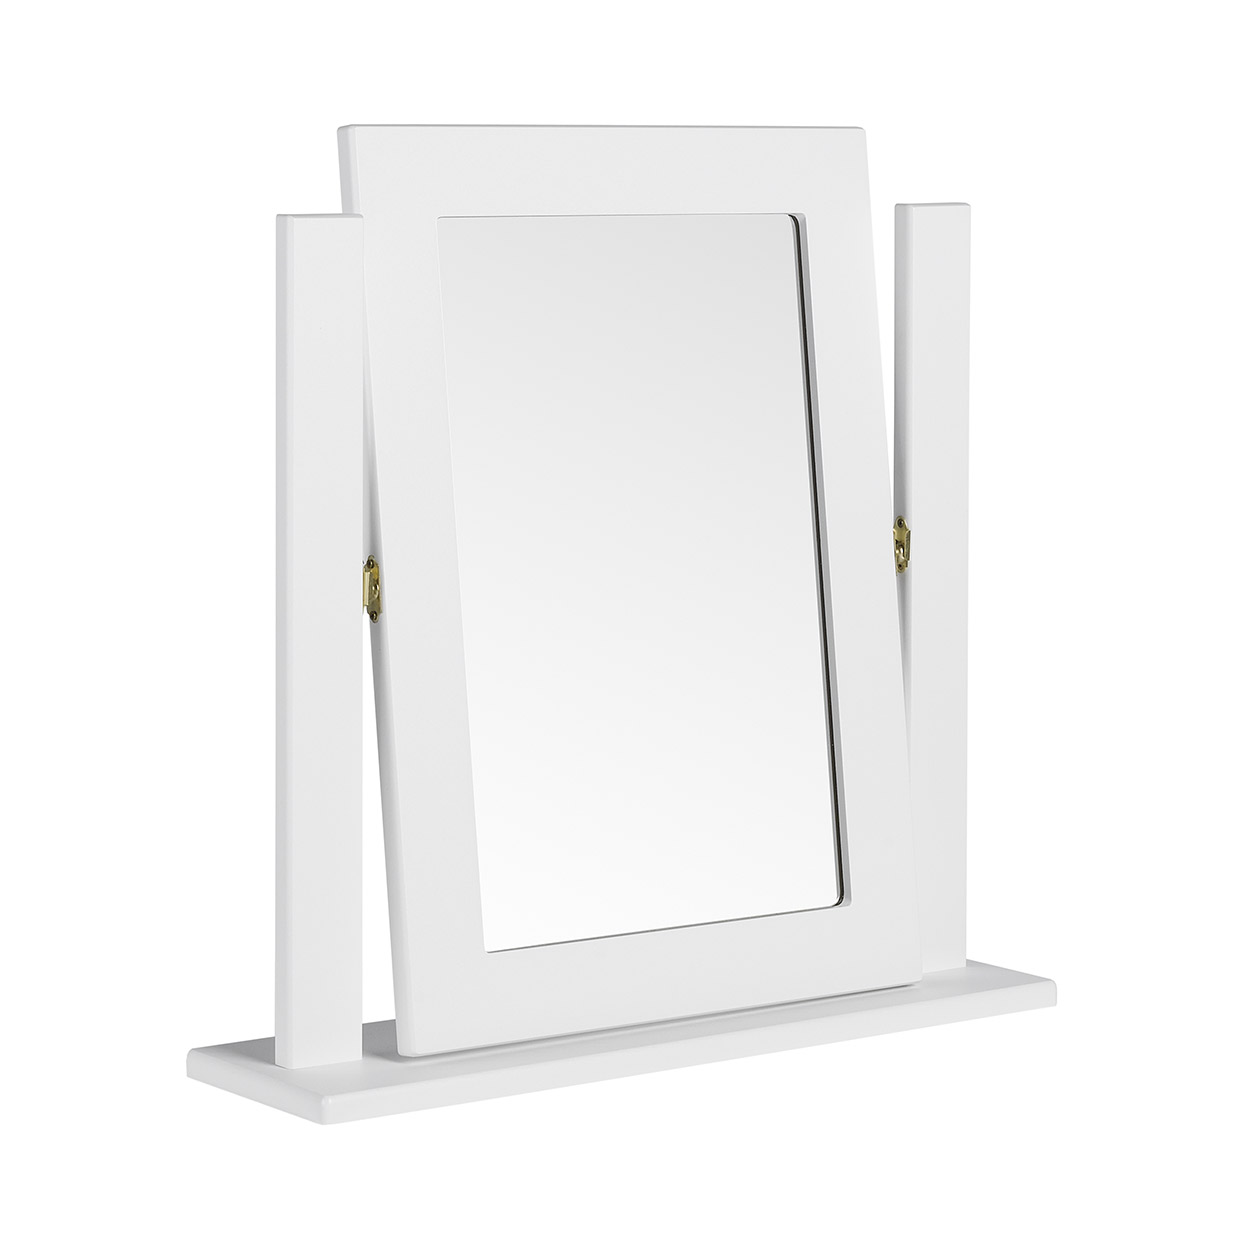 Viz Alp White Gloss Dressing Table Mirror UK Made Quality Fully Pre Assembled